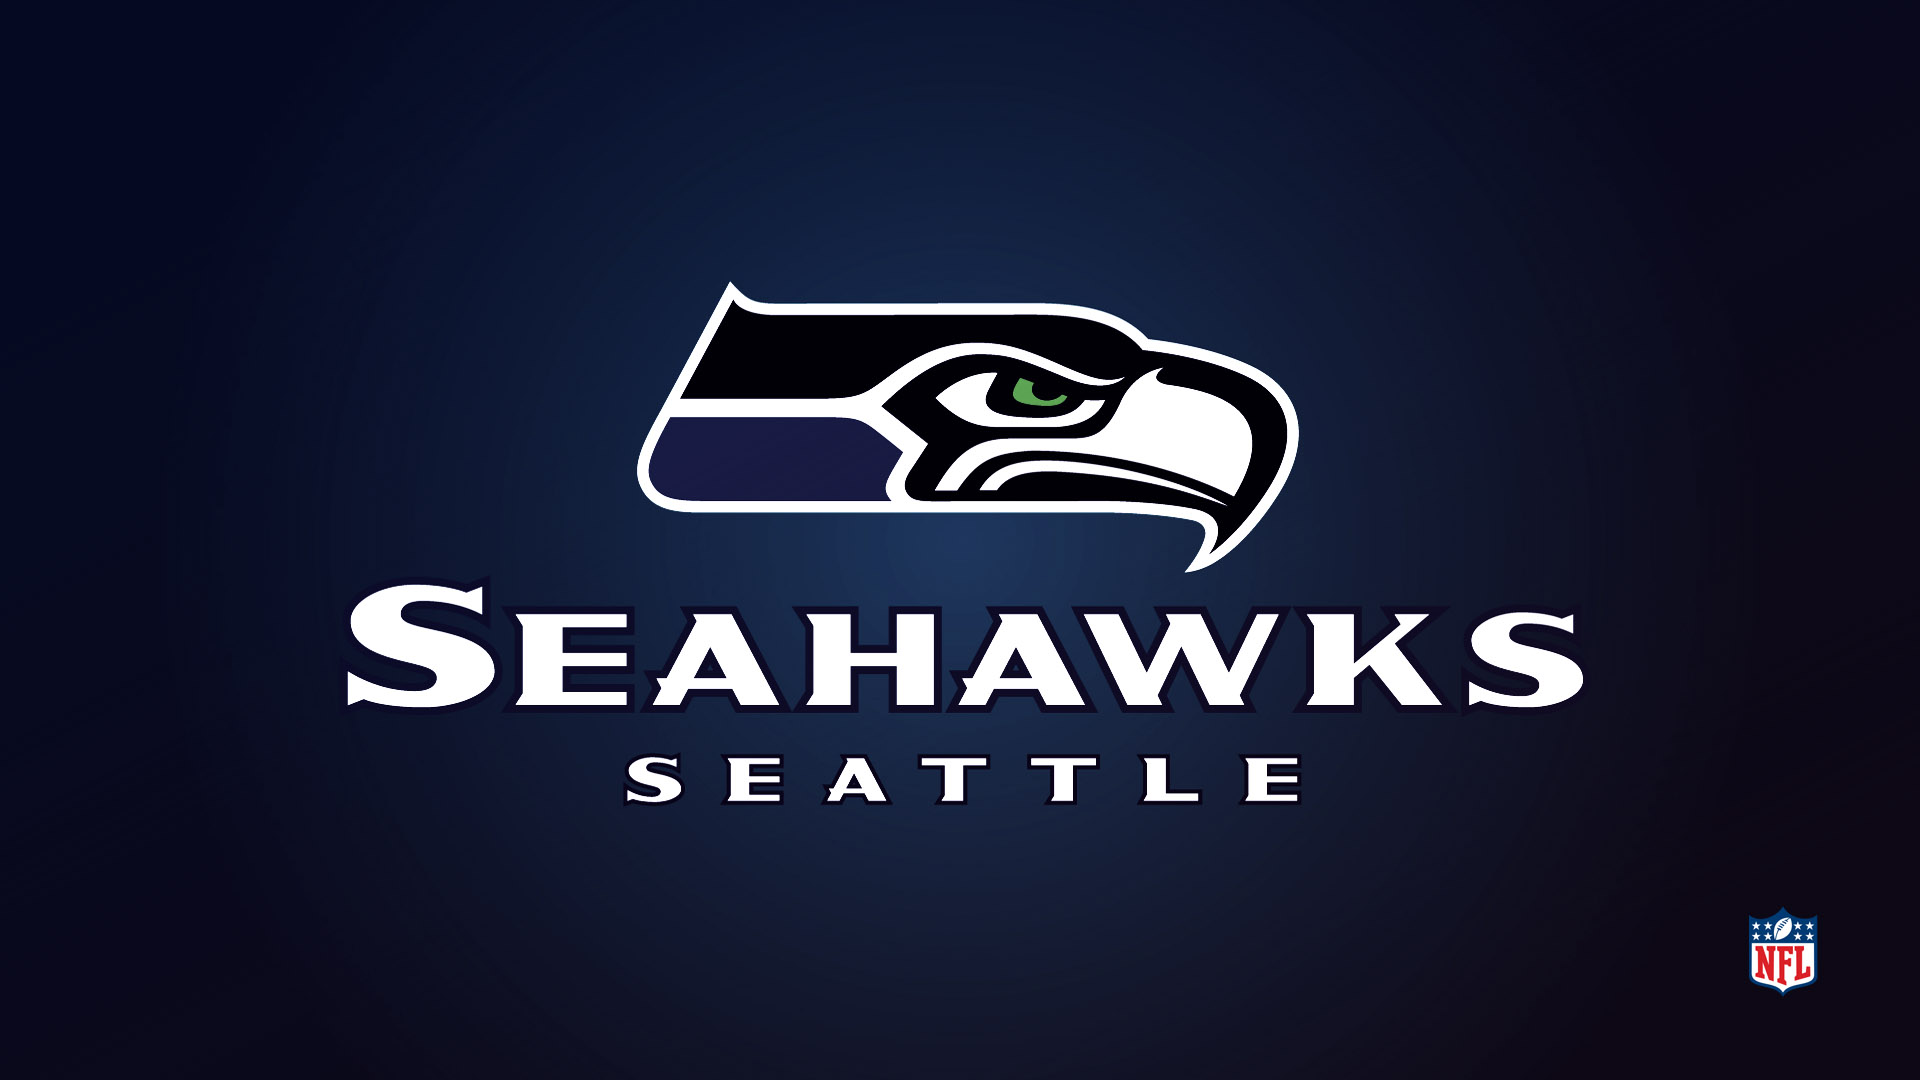 Seattle Seahawks Wallpaper 1920x1080: Seahawks Wallpaper